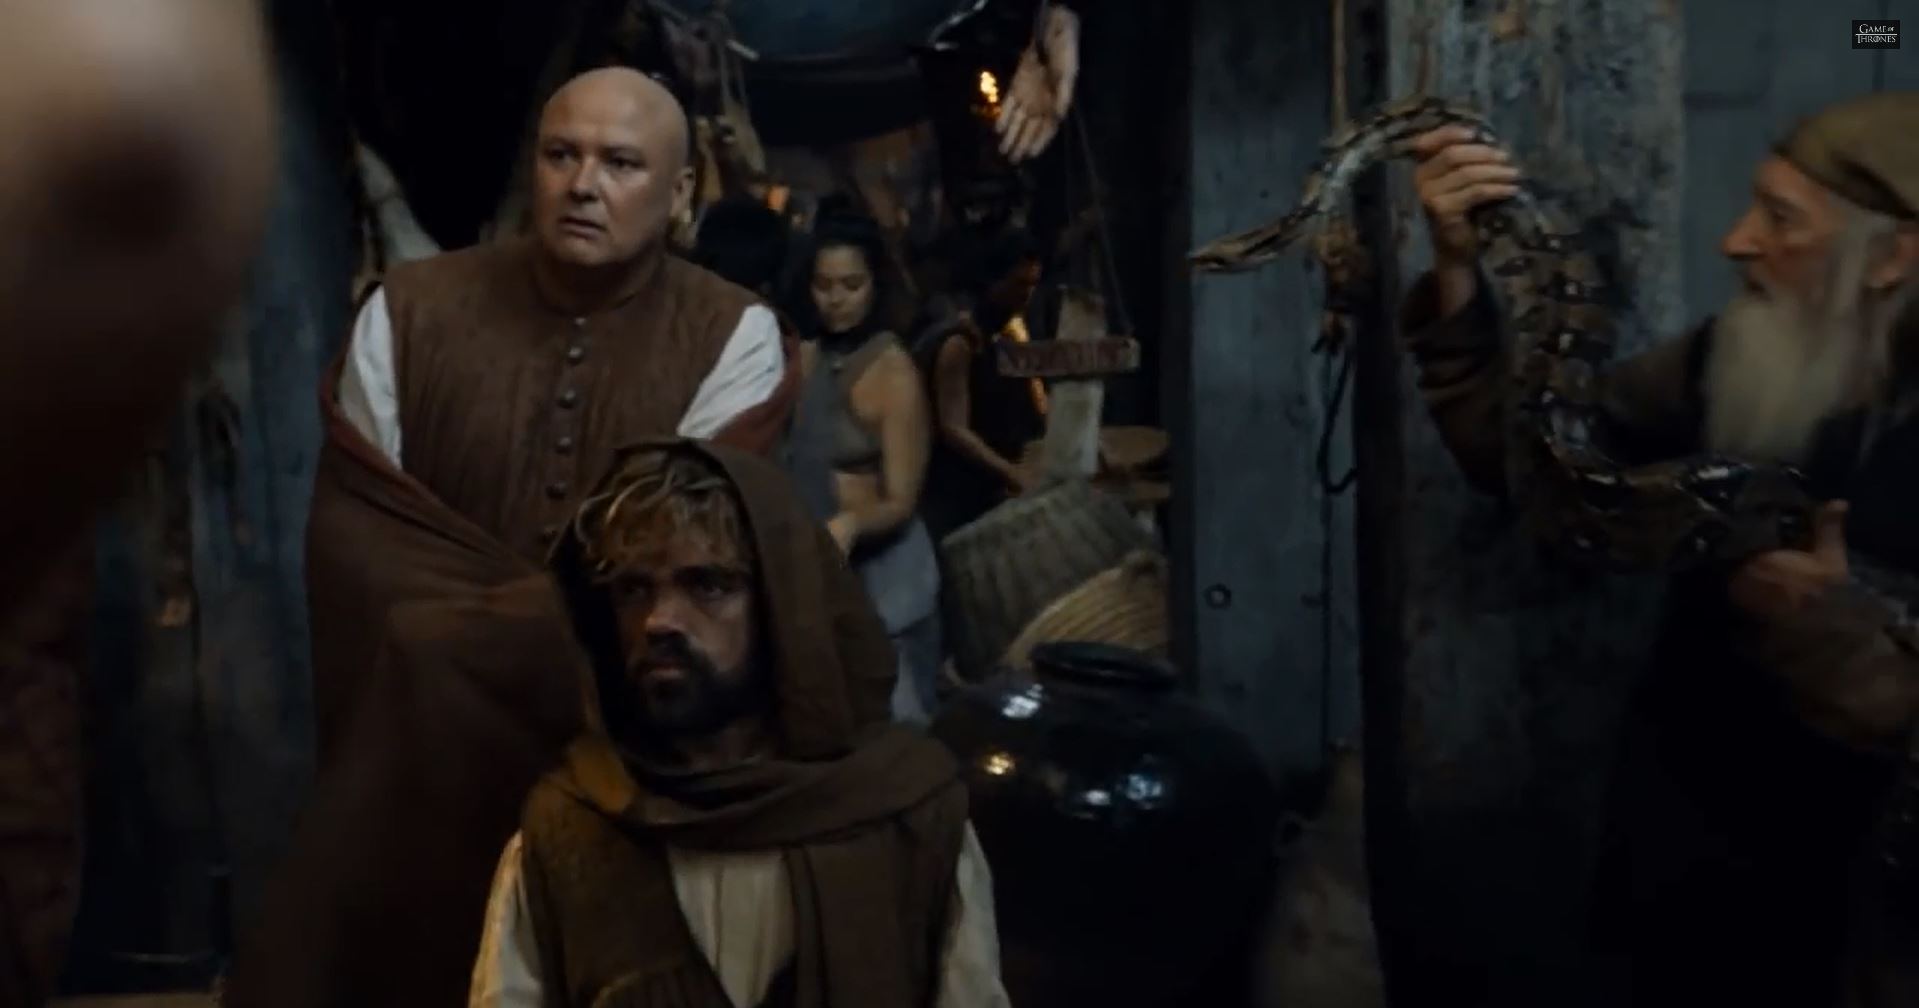 Game Of Thrones Season 5 Preview. Varys and Tyrion